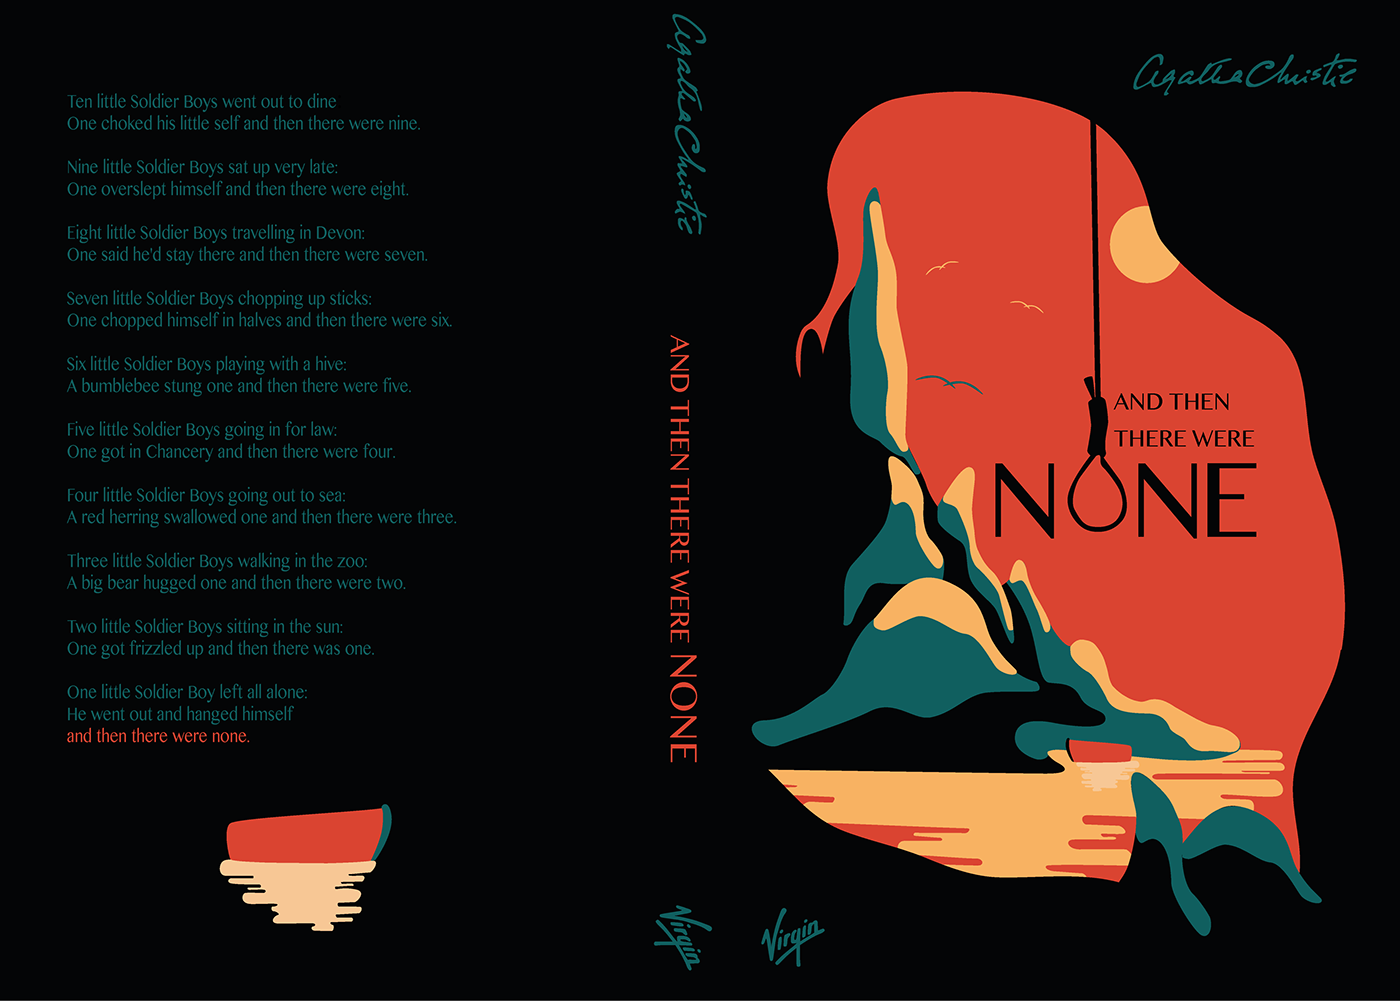 Book Cover Design Research : Book cover design and then there were none on behance